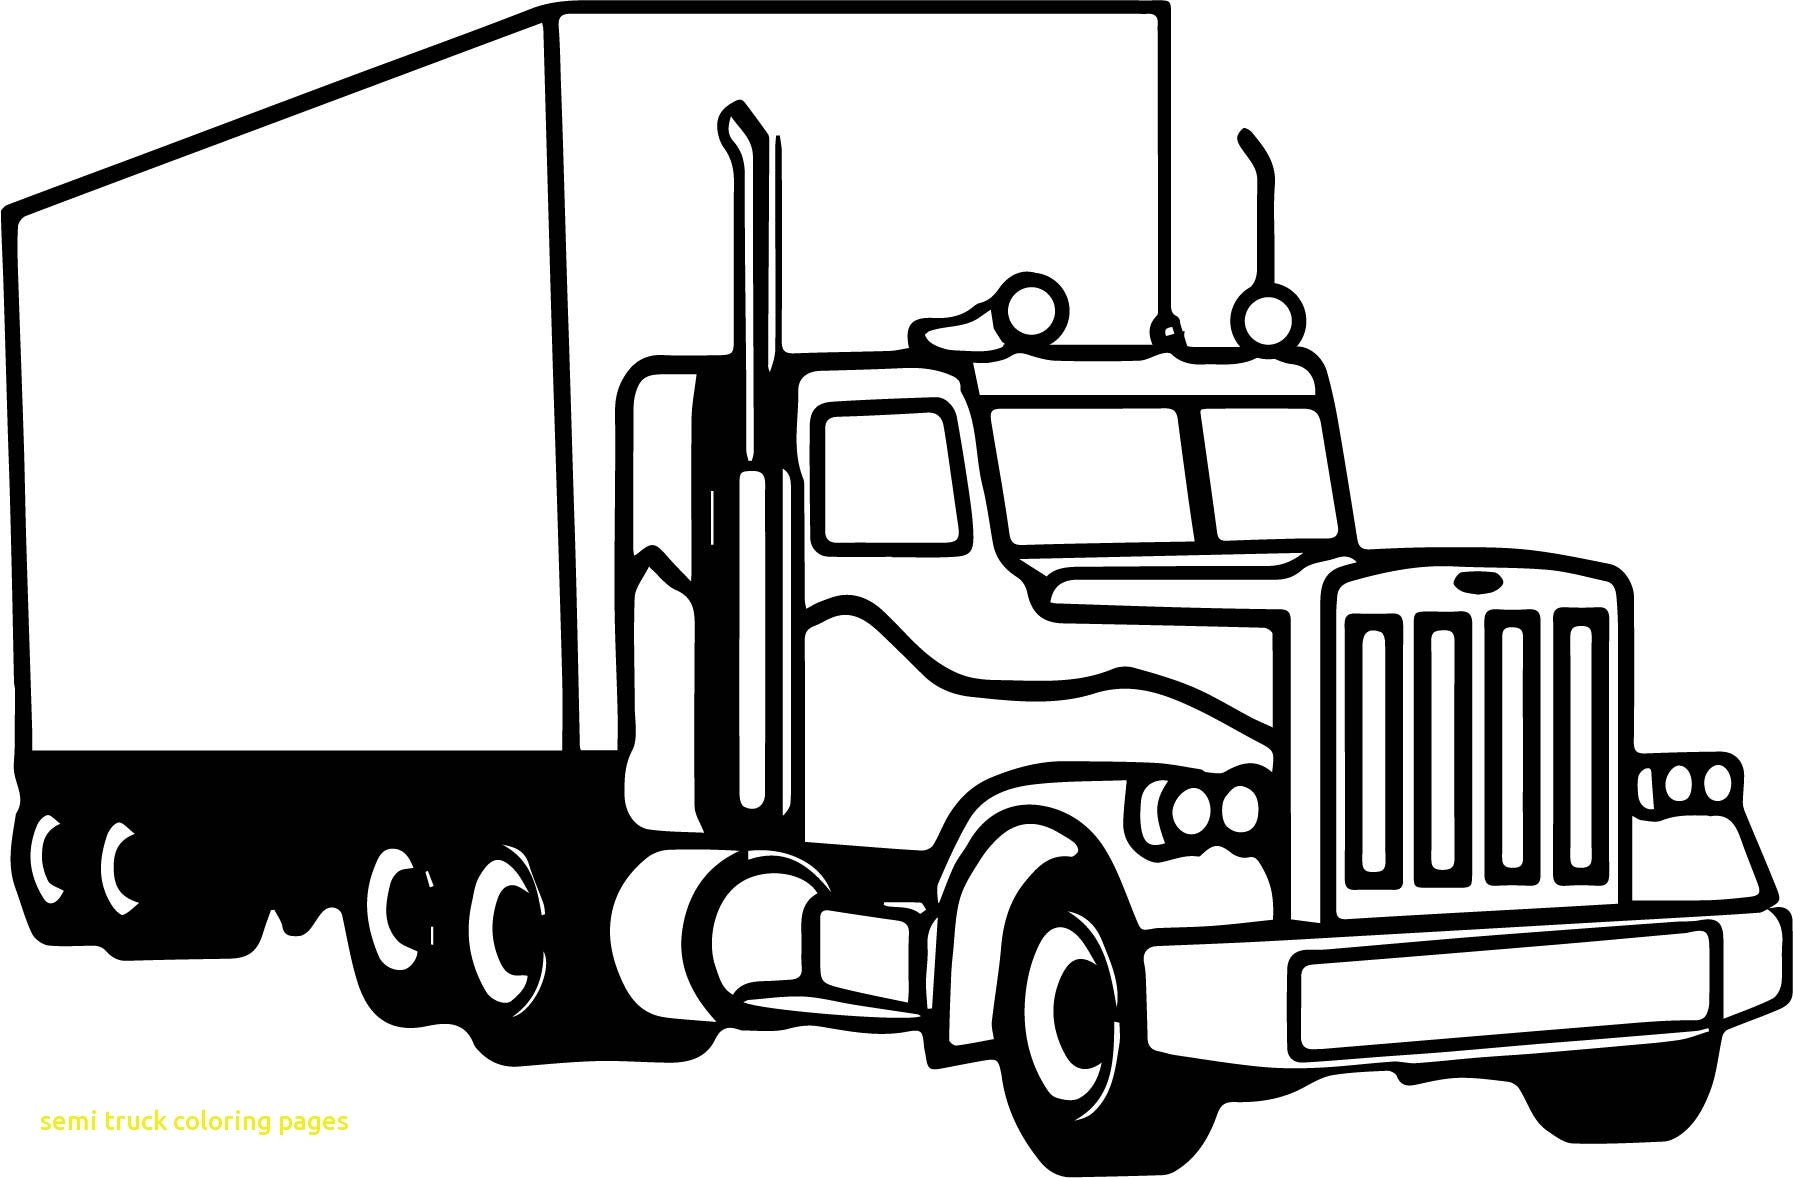 Truck Coloring Pages Gallery 16p - Free For kids